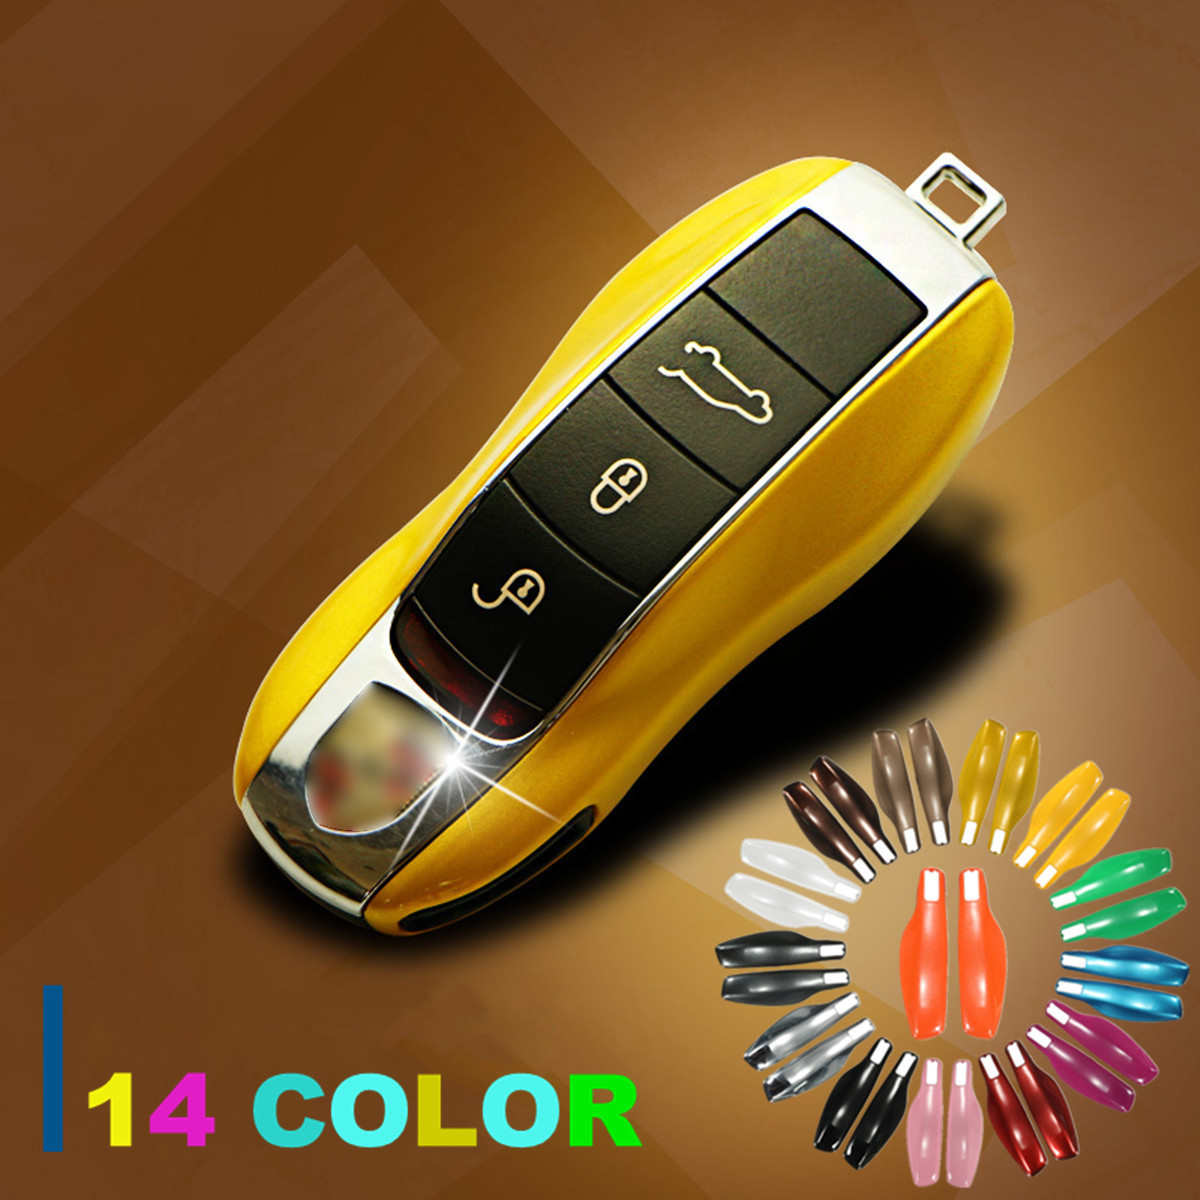 Car Key Case Cover For Porsche Keyless Remote Case Casing Side Shell Cap Fob Protection